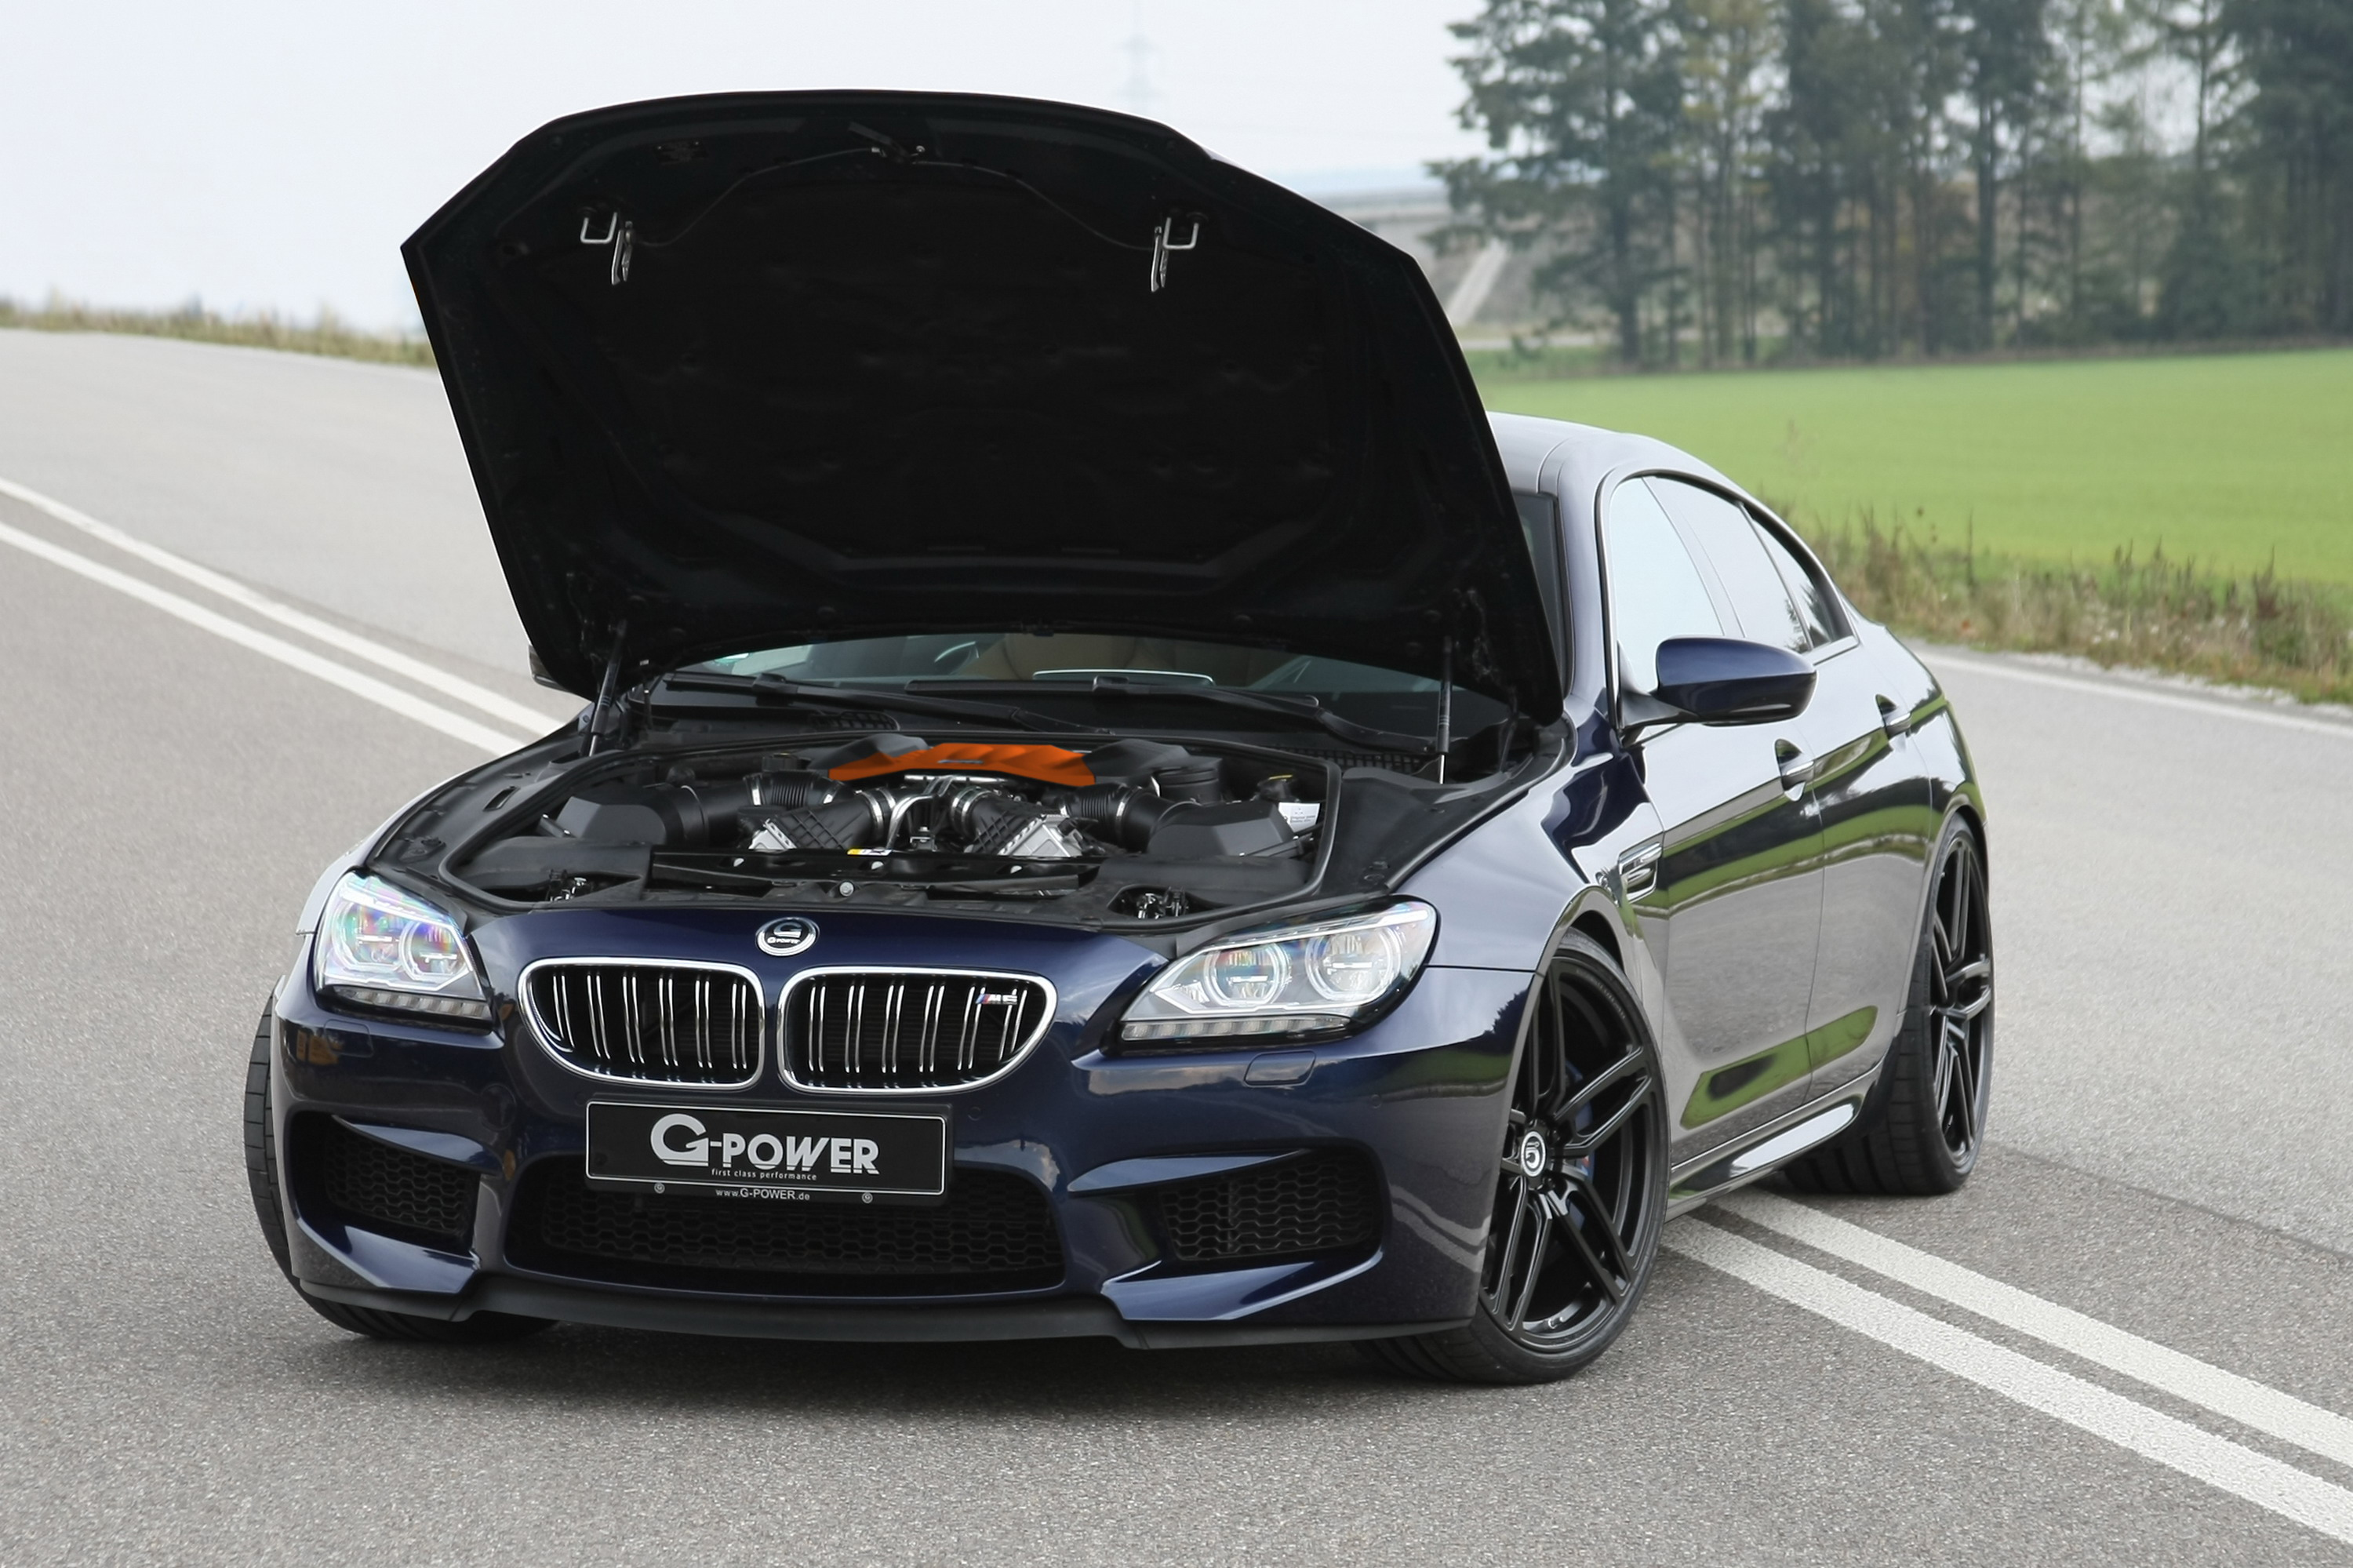 2016 Bmw M6 Gran Coupe By G Power Top Speed